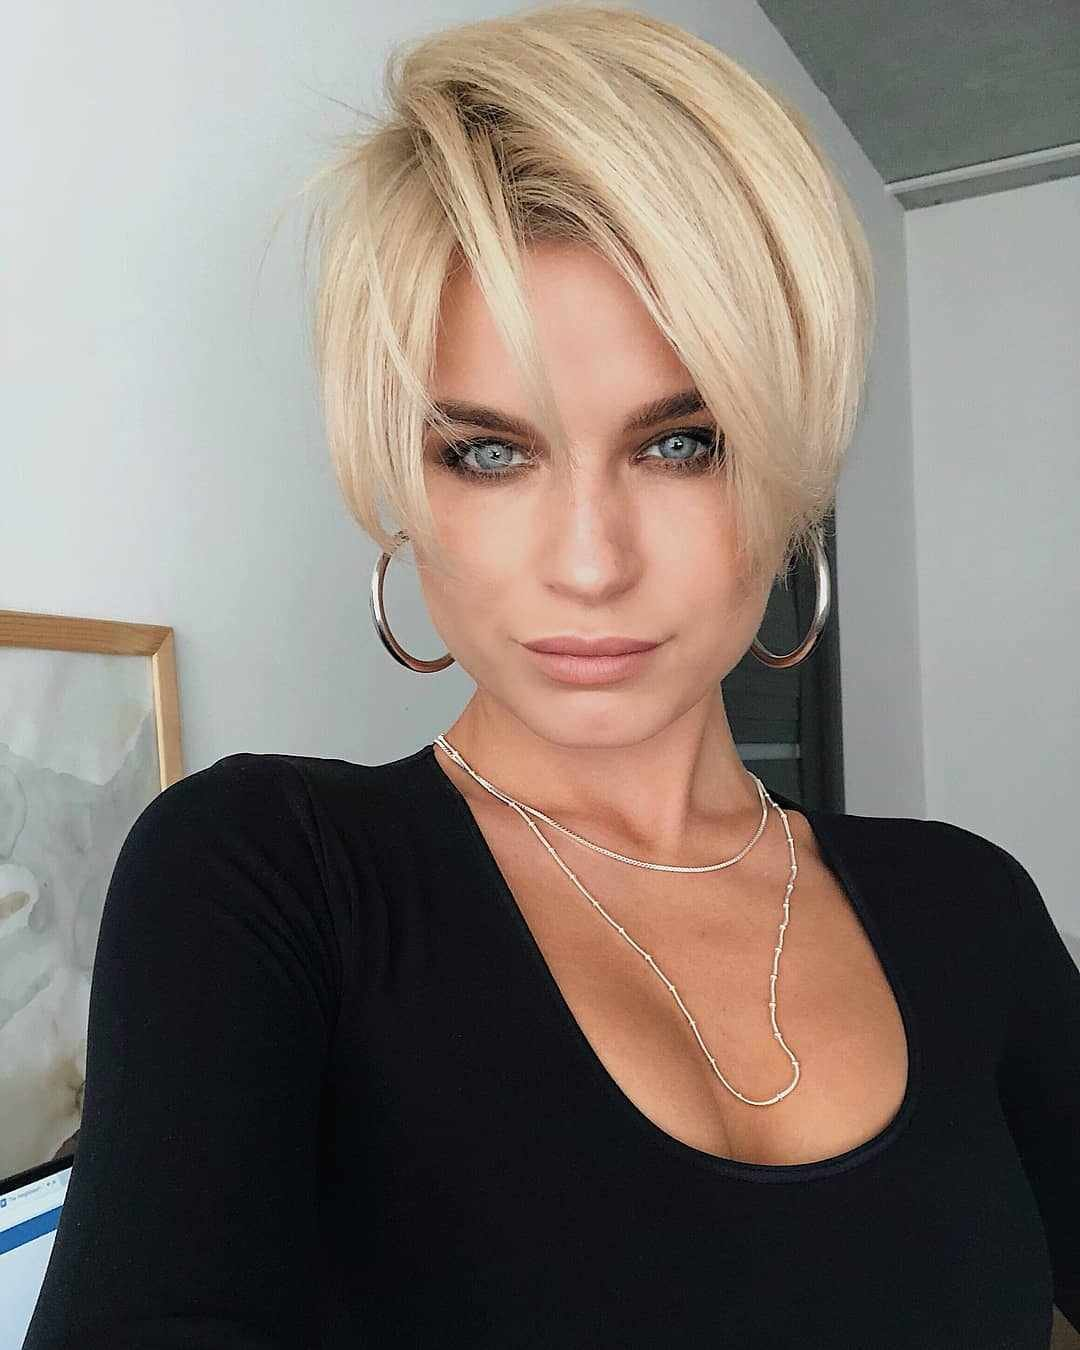 New Latest Trendy Short Haircuts 2019 » Hairstyle Samples Ideas With Pictures